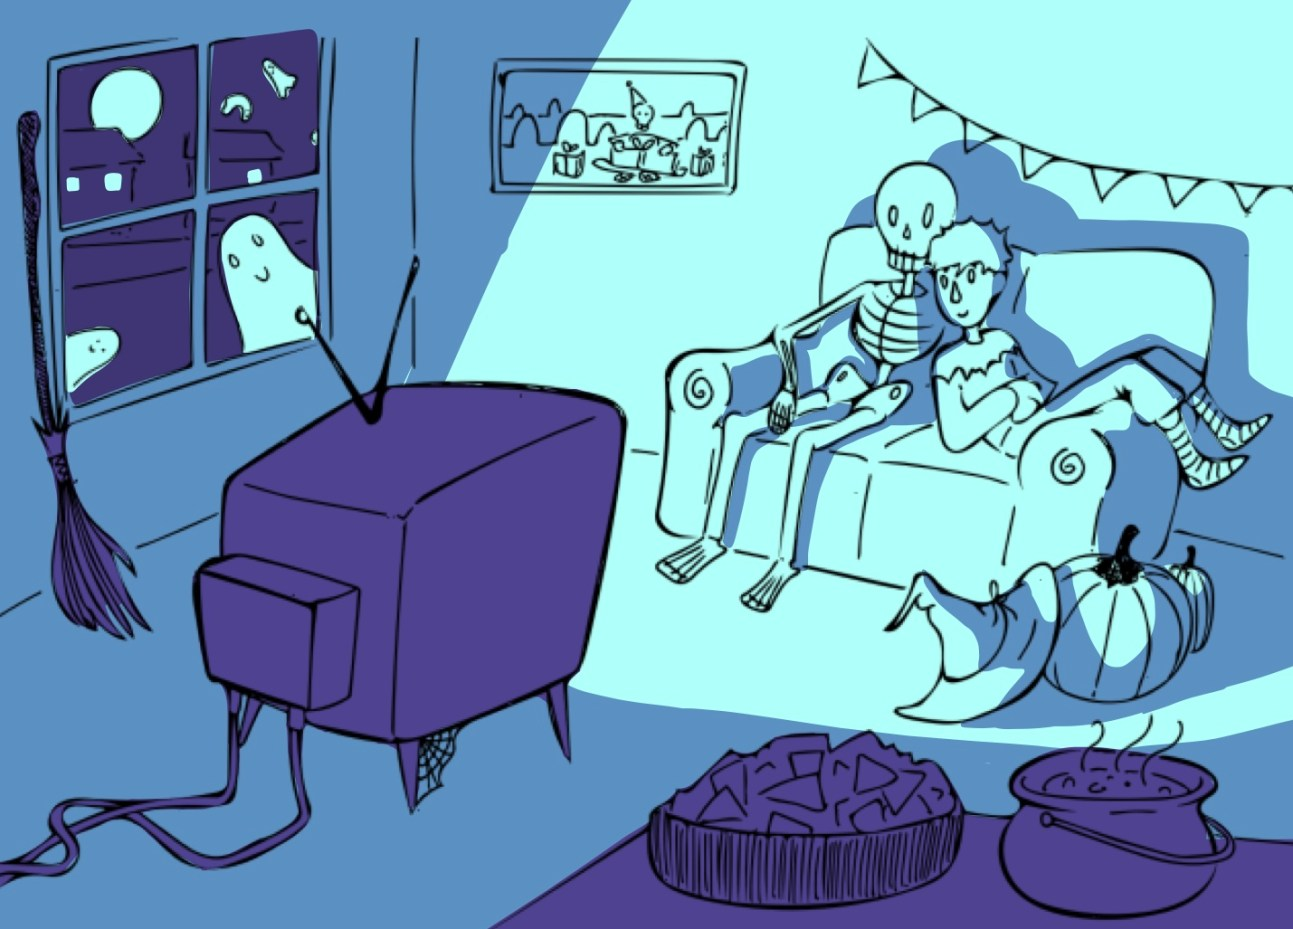 Watching spooky movies illustration